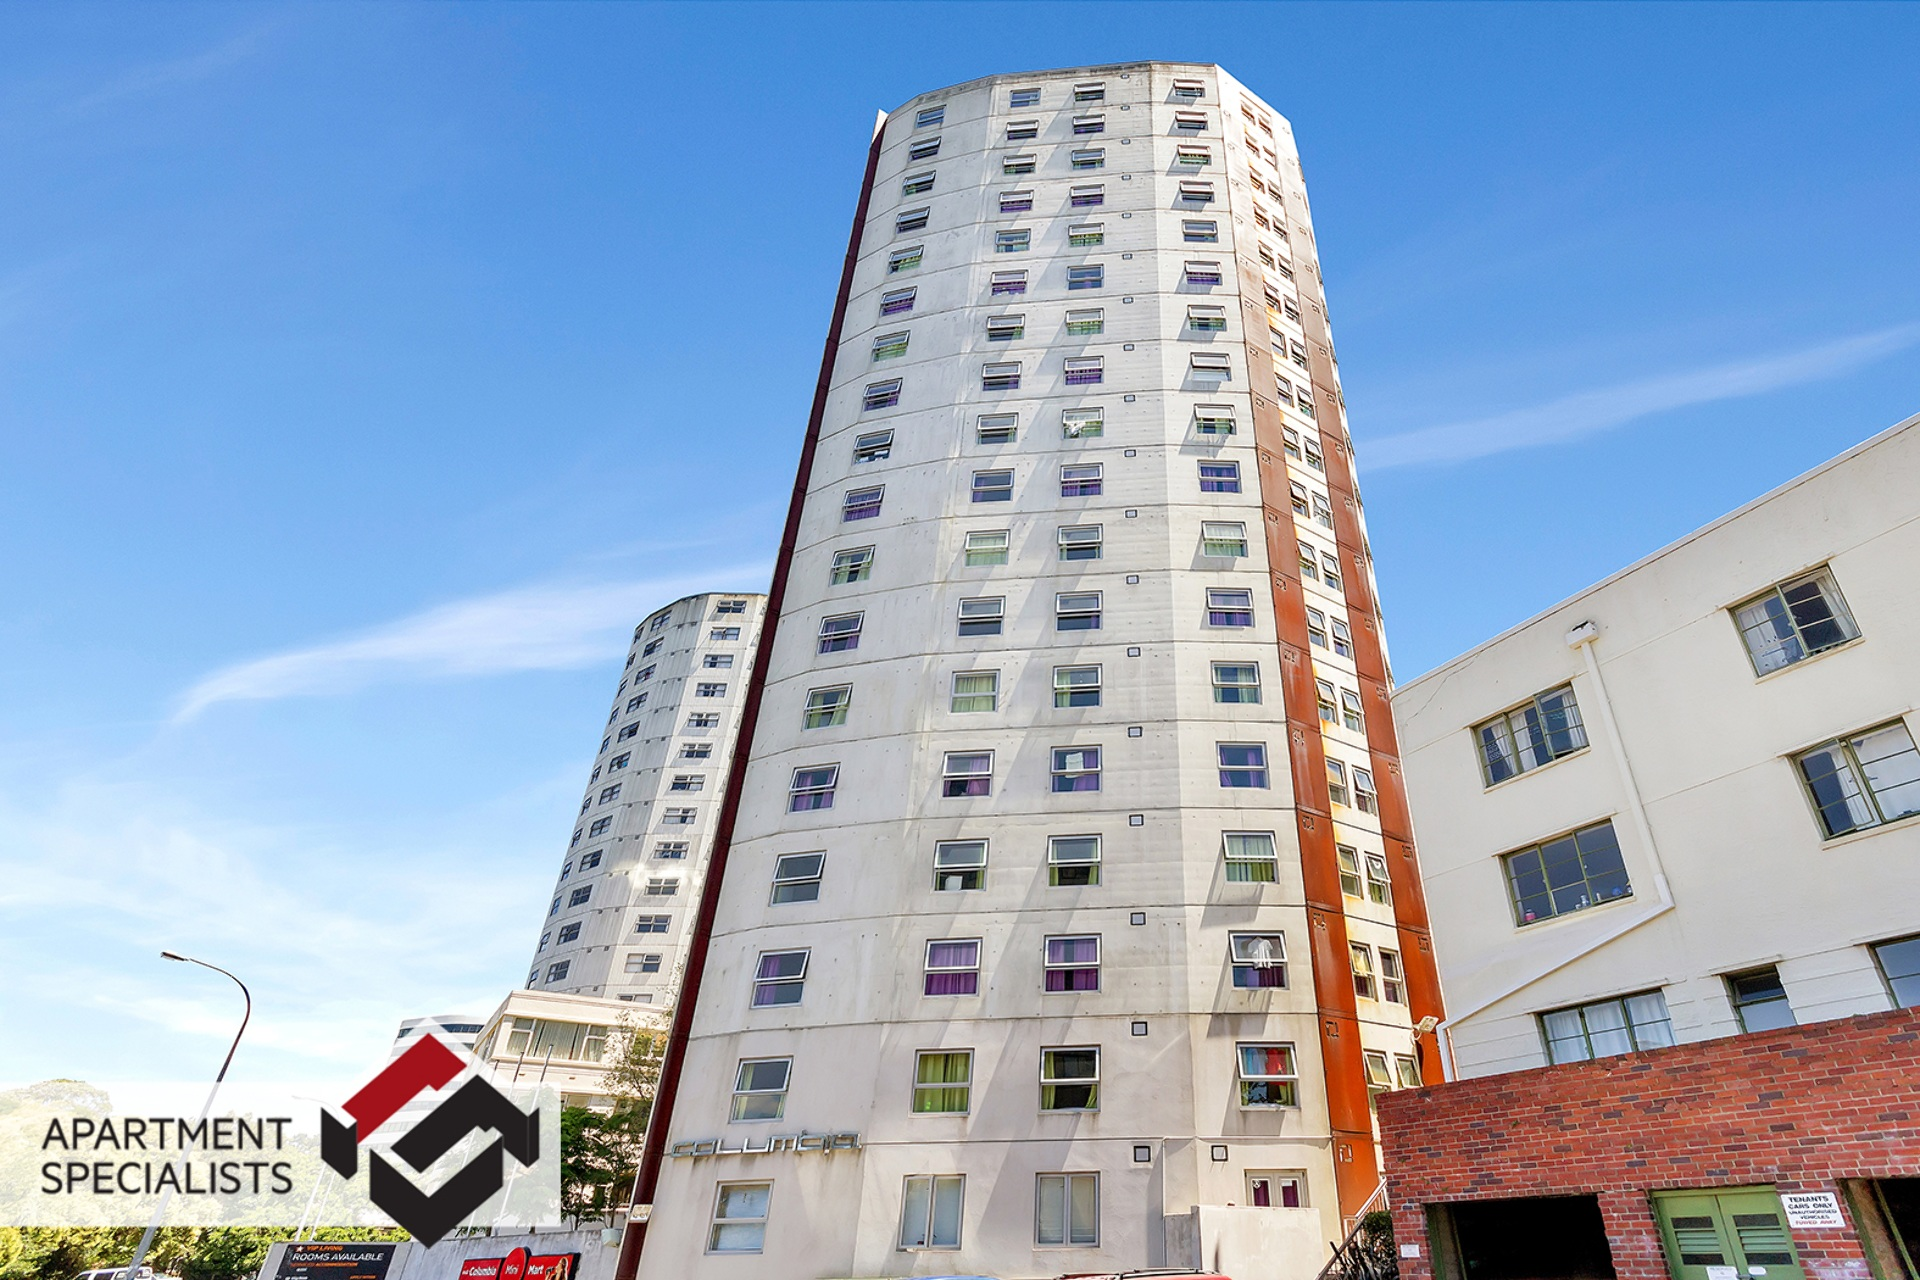 2 | 15 Whitaker Place, City Centre | Apartment Specialists